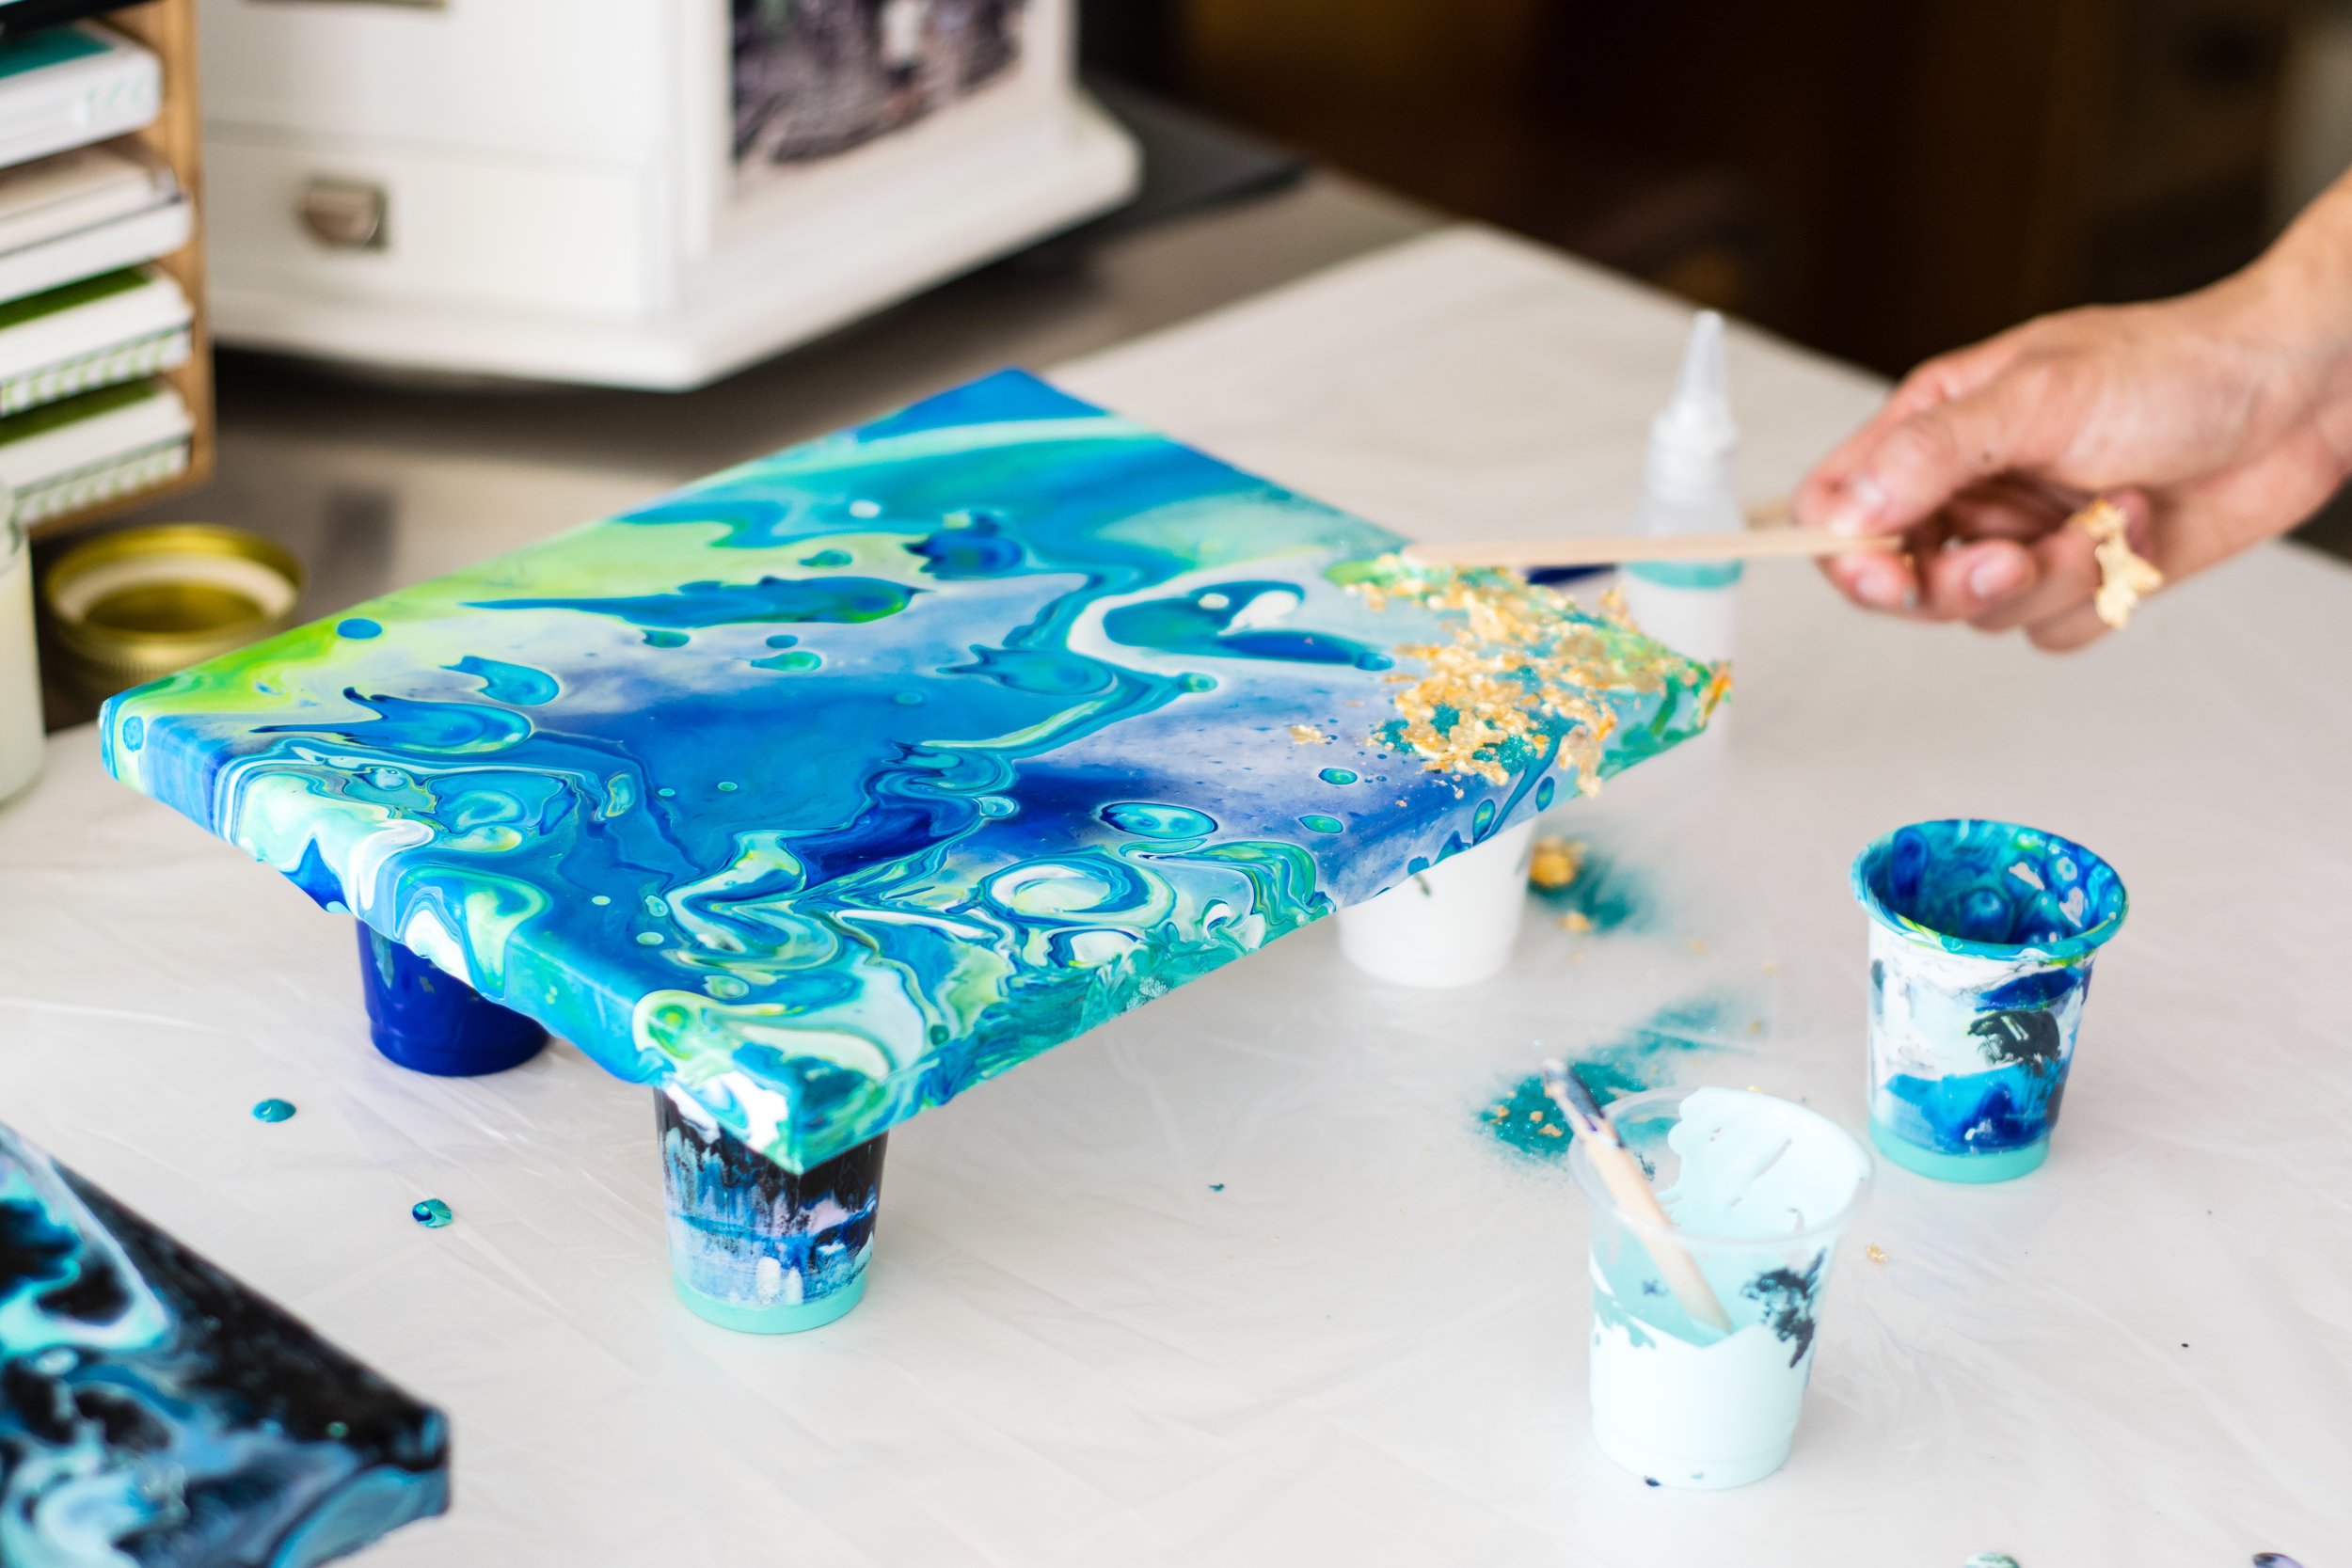 How to Create Color Pour Art